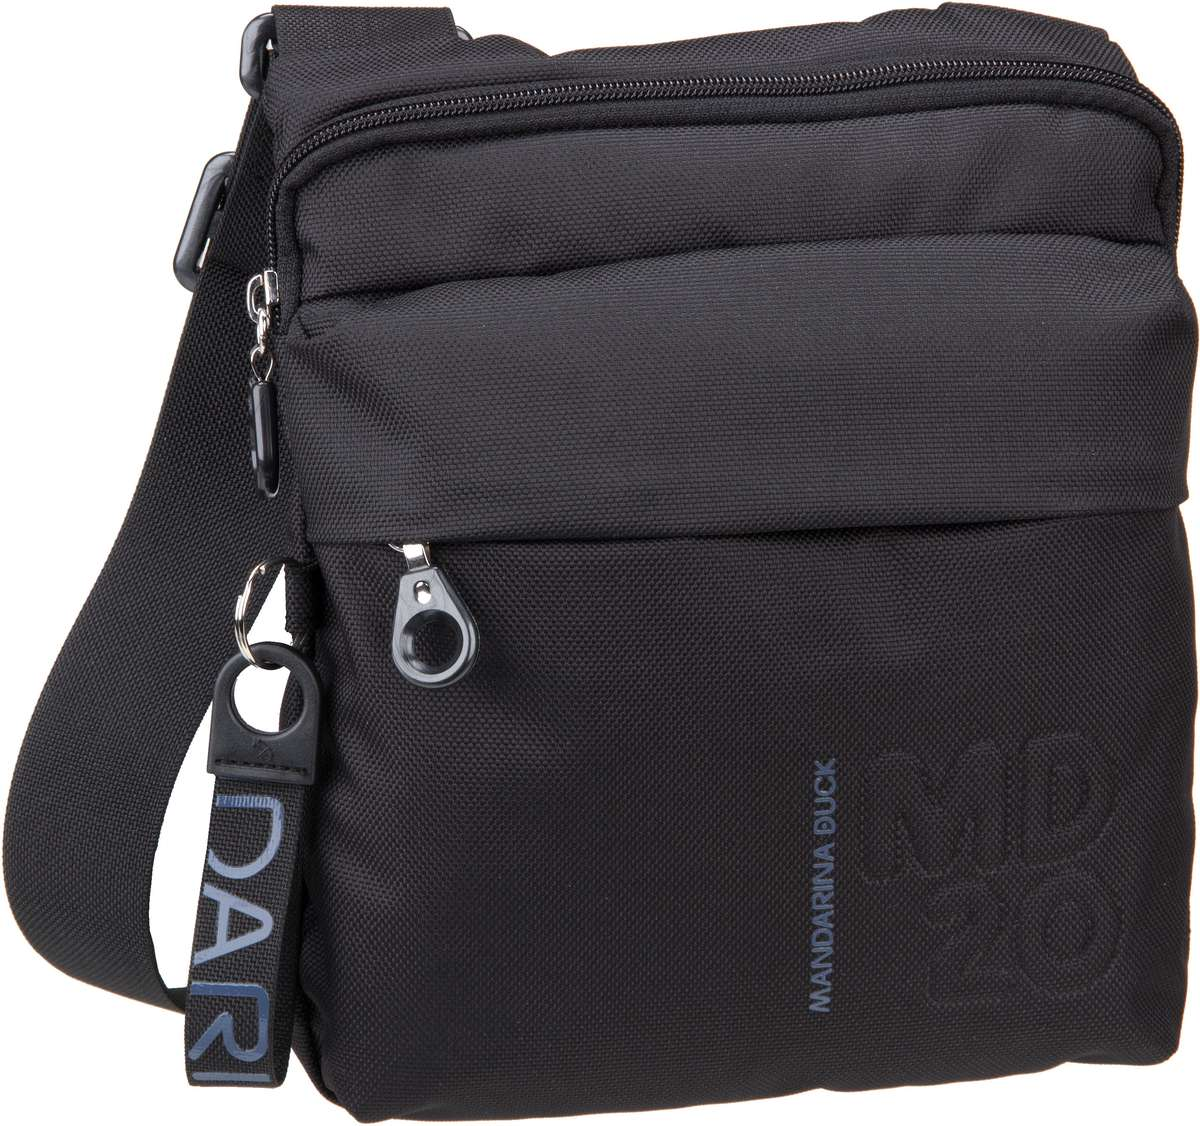 Umhängetasche MD20 Small Crossover Bag QMT04 Black